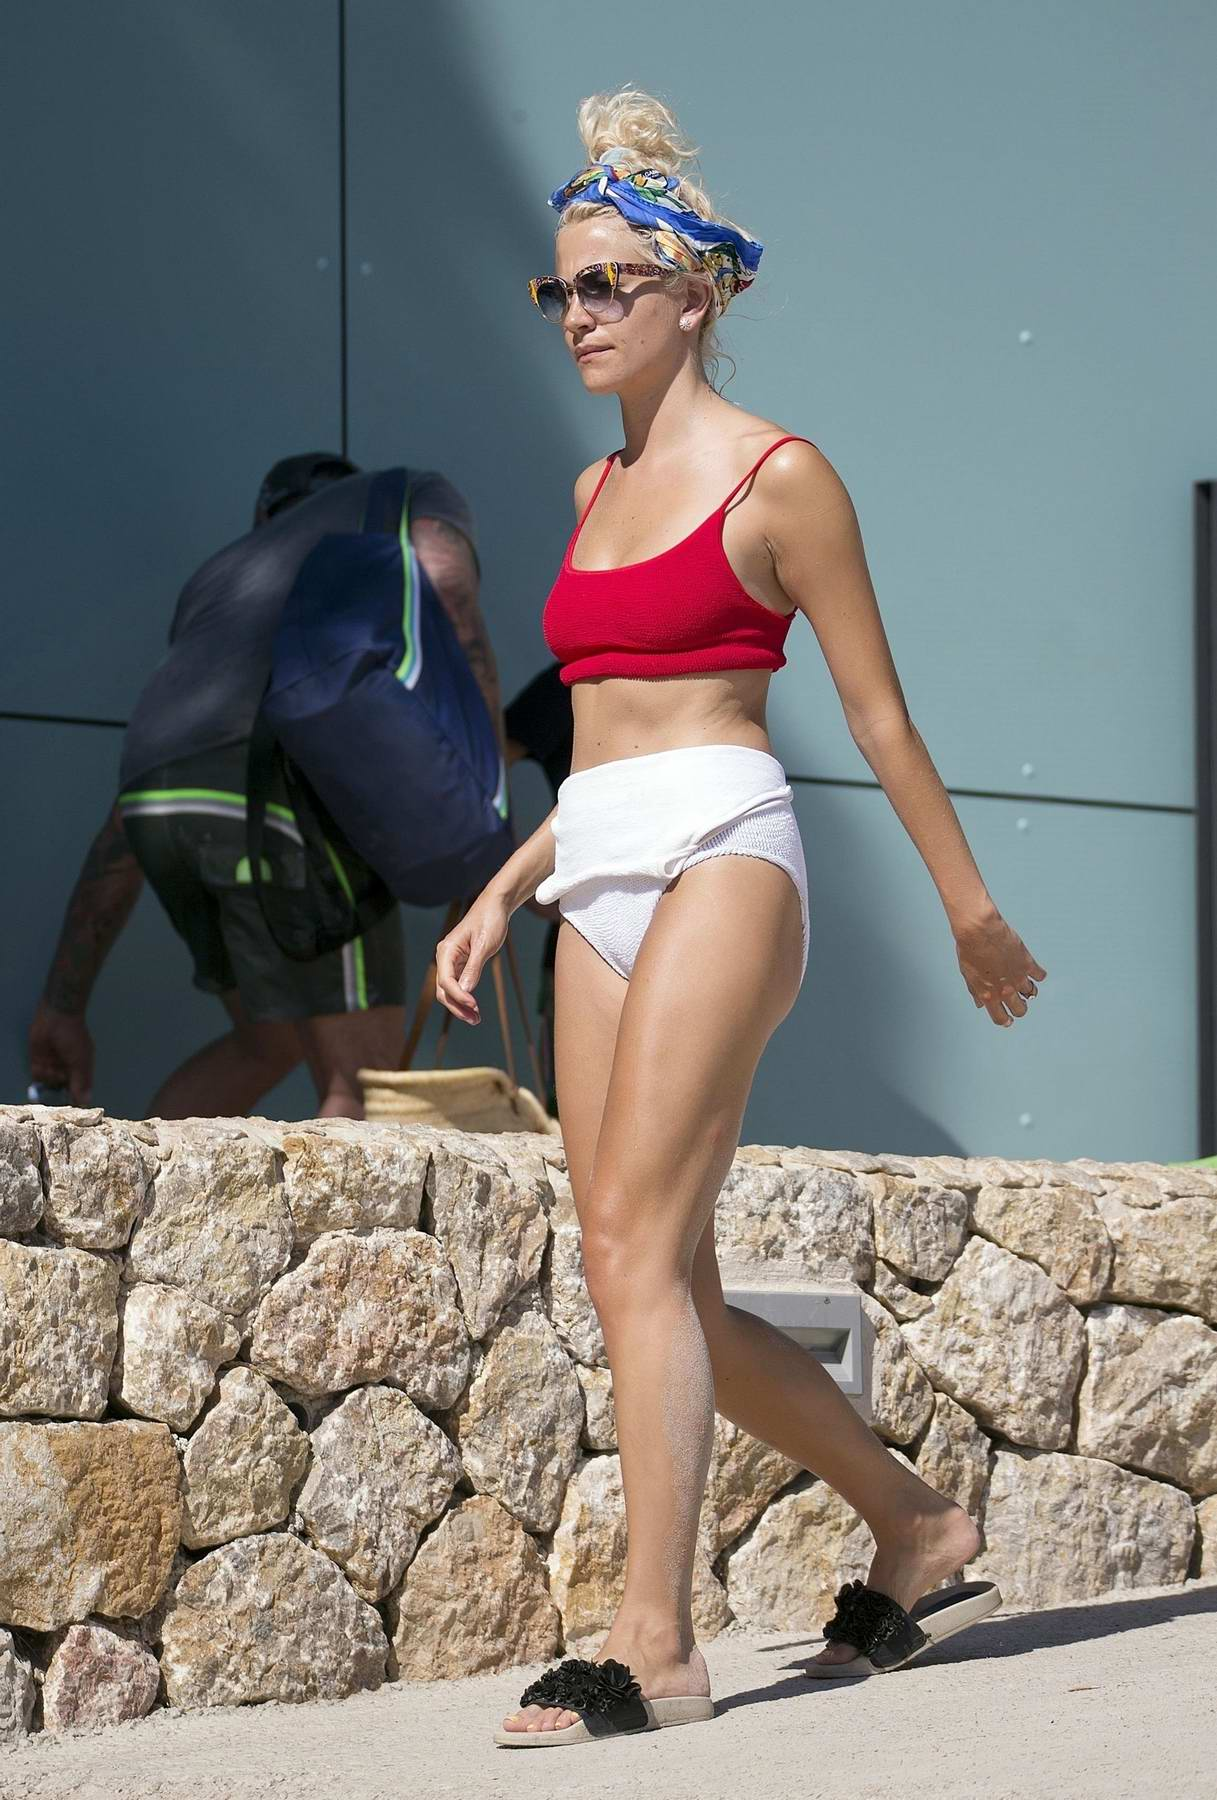 Pixie Lott in a red and white bikini at the beach in Mallorca, Spain